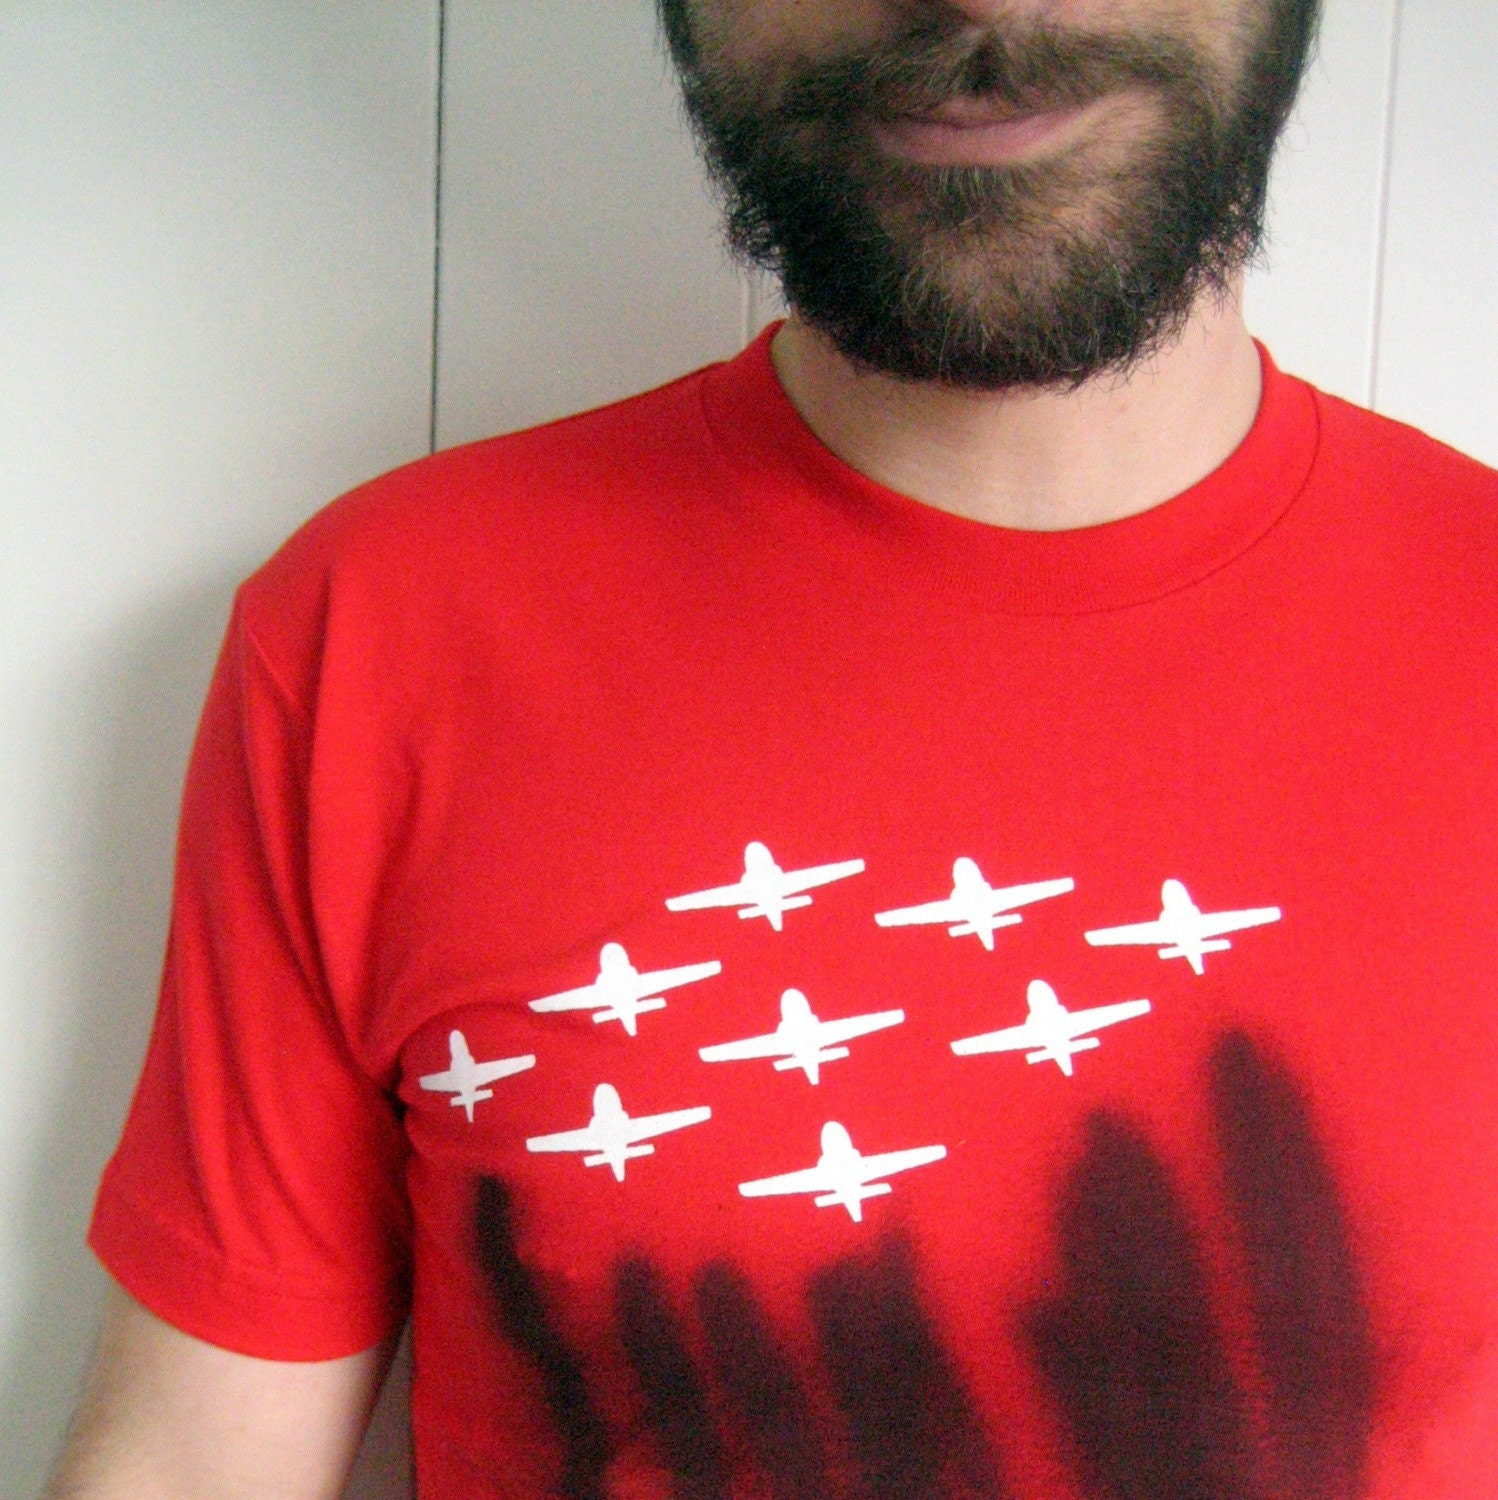 Airplane Formation Graphic T-Shirt - Unique Screenprint and Spraypainted Men's Size Small Red, White and Black